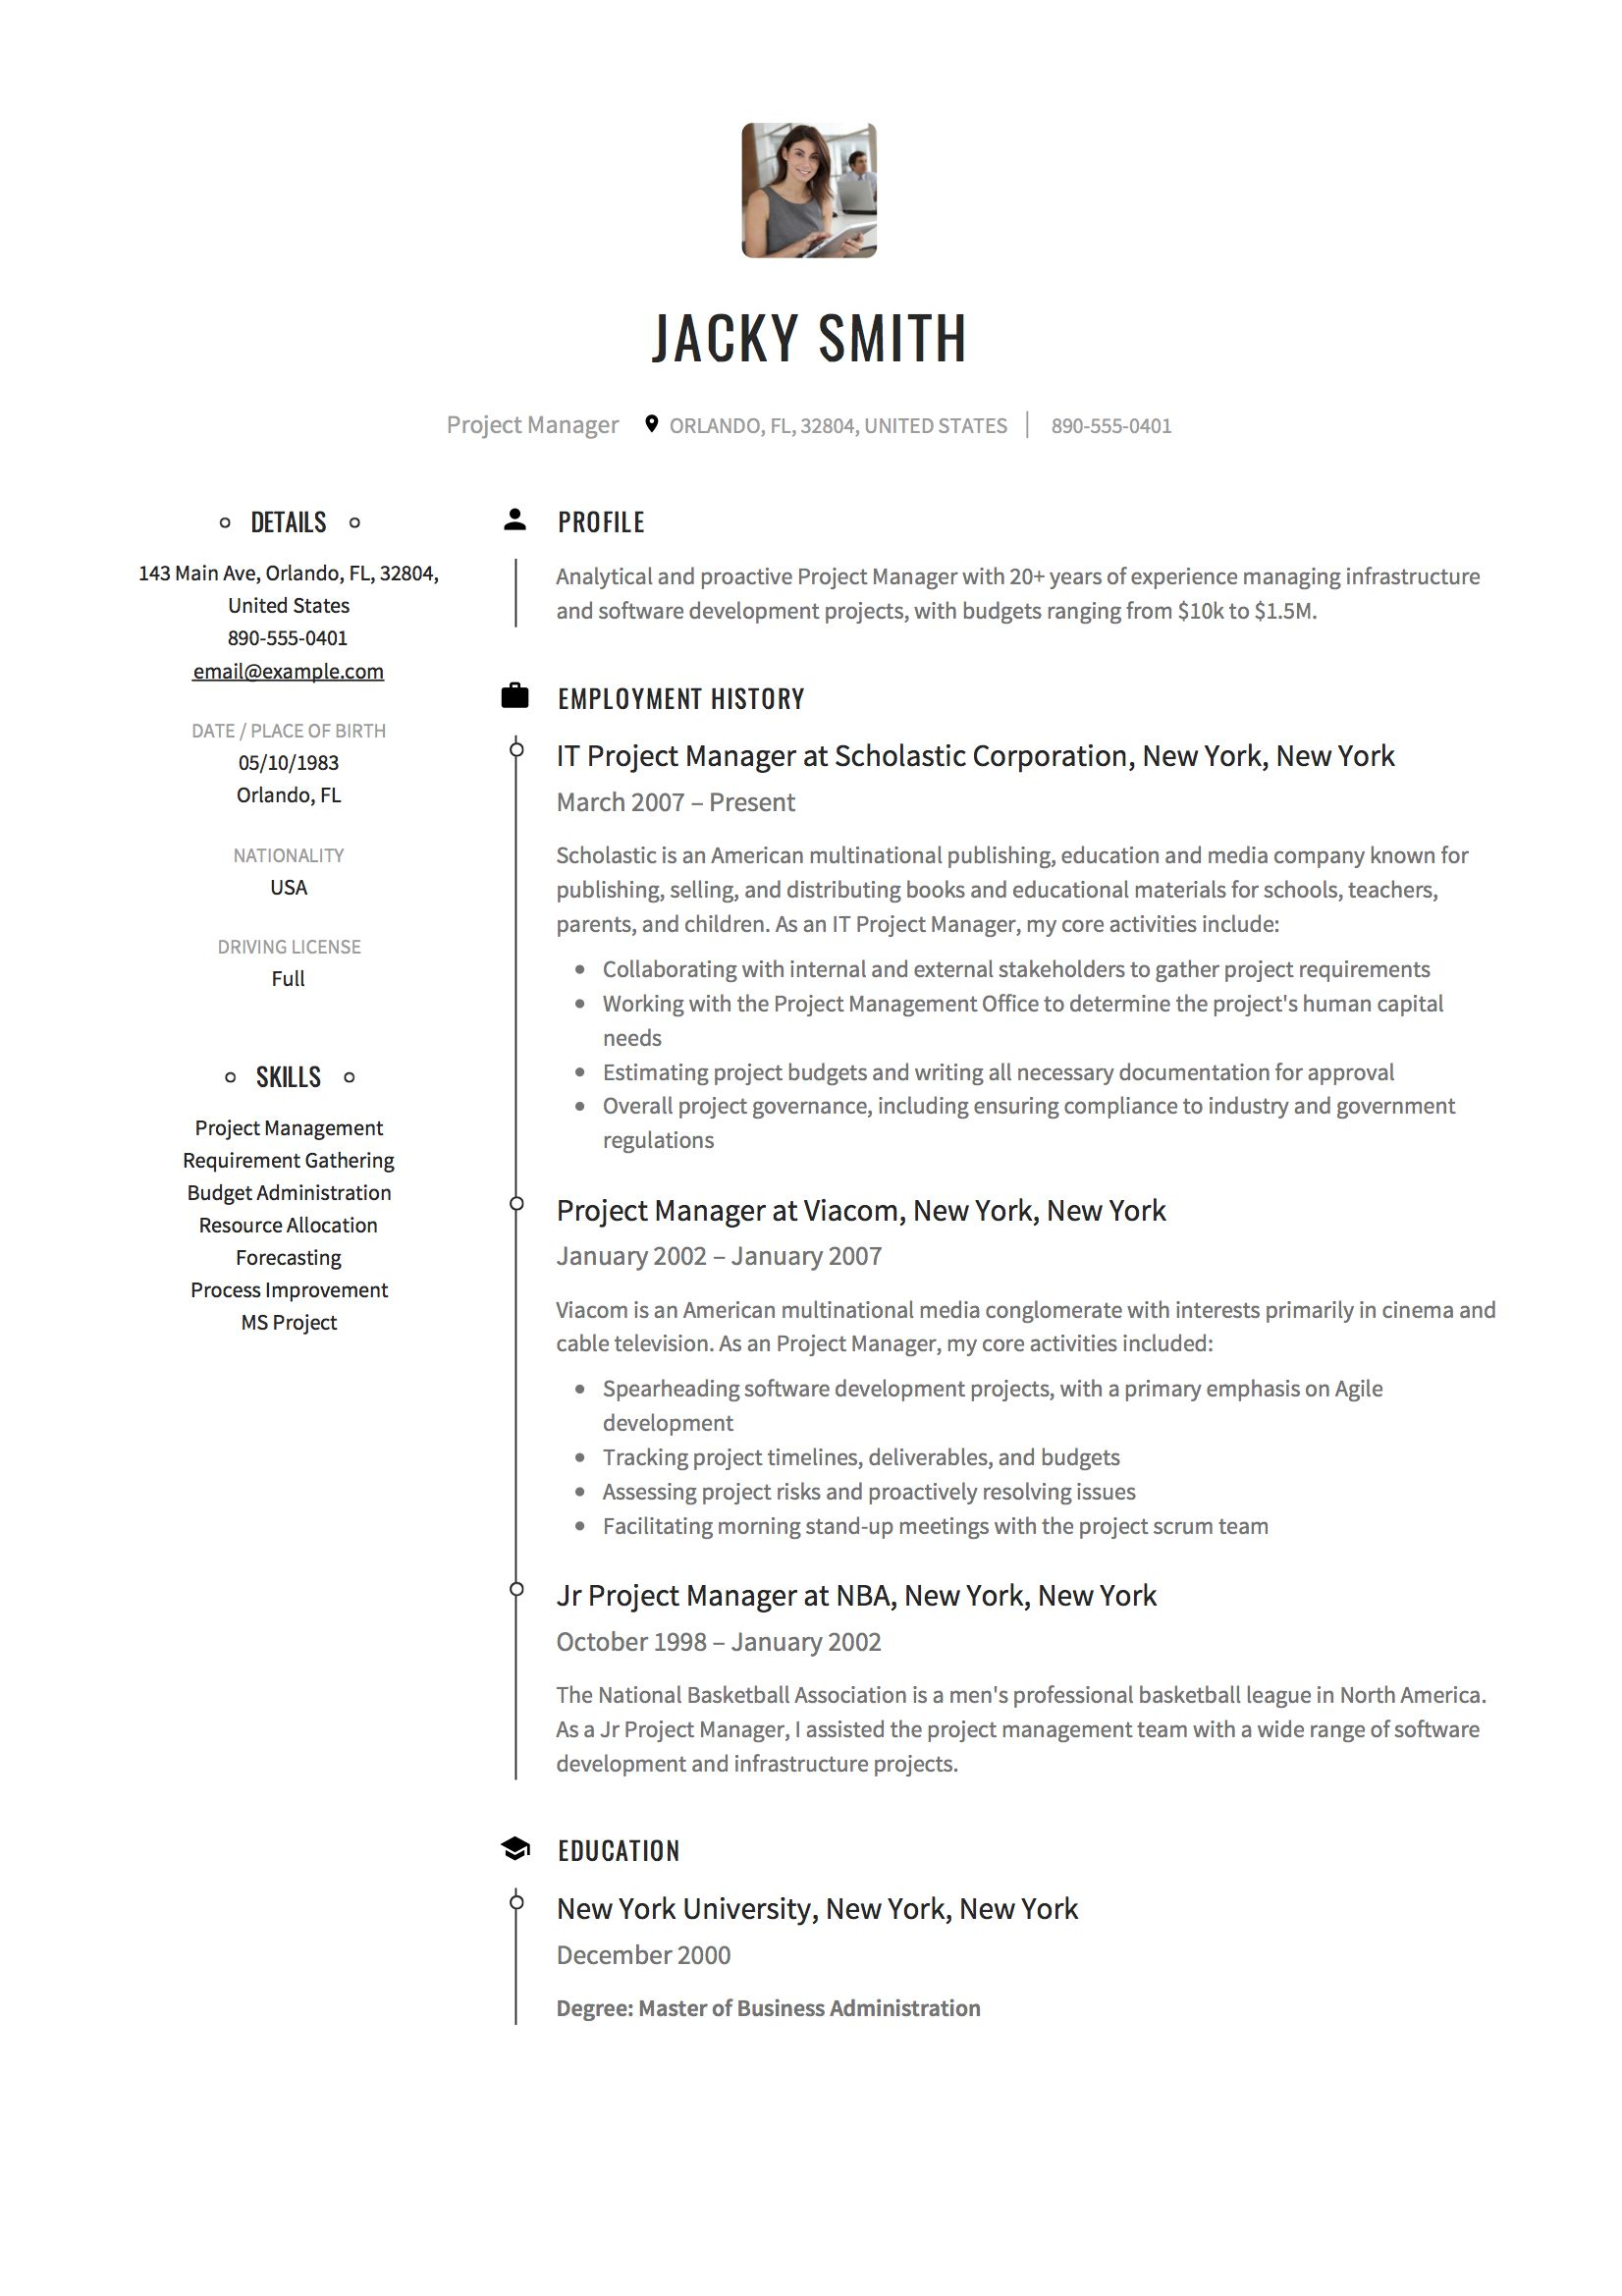 Project Manager Resume & Guide (With images) Project